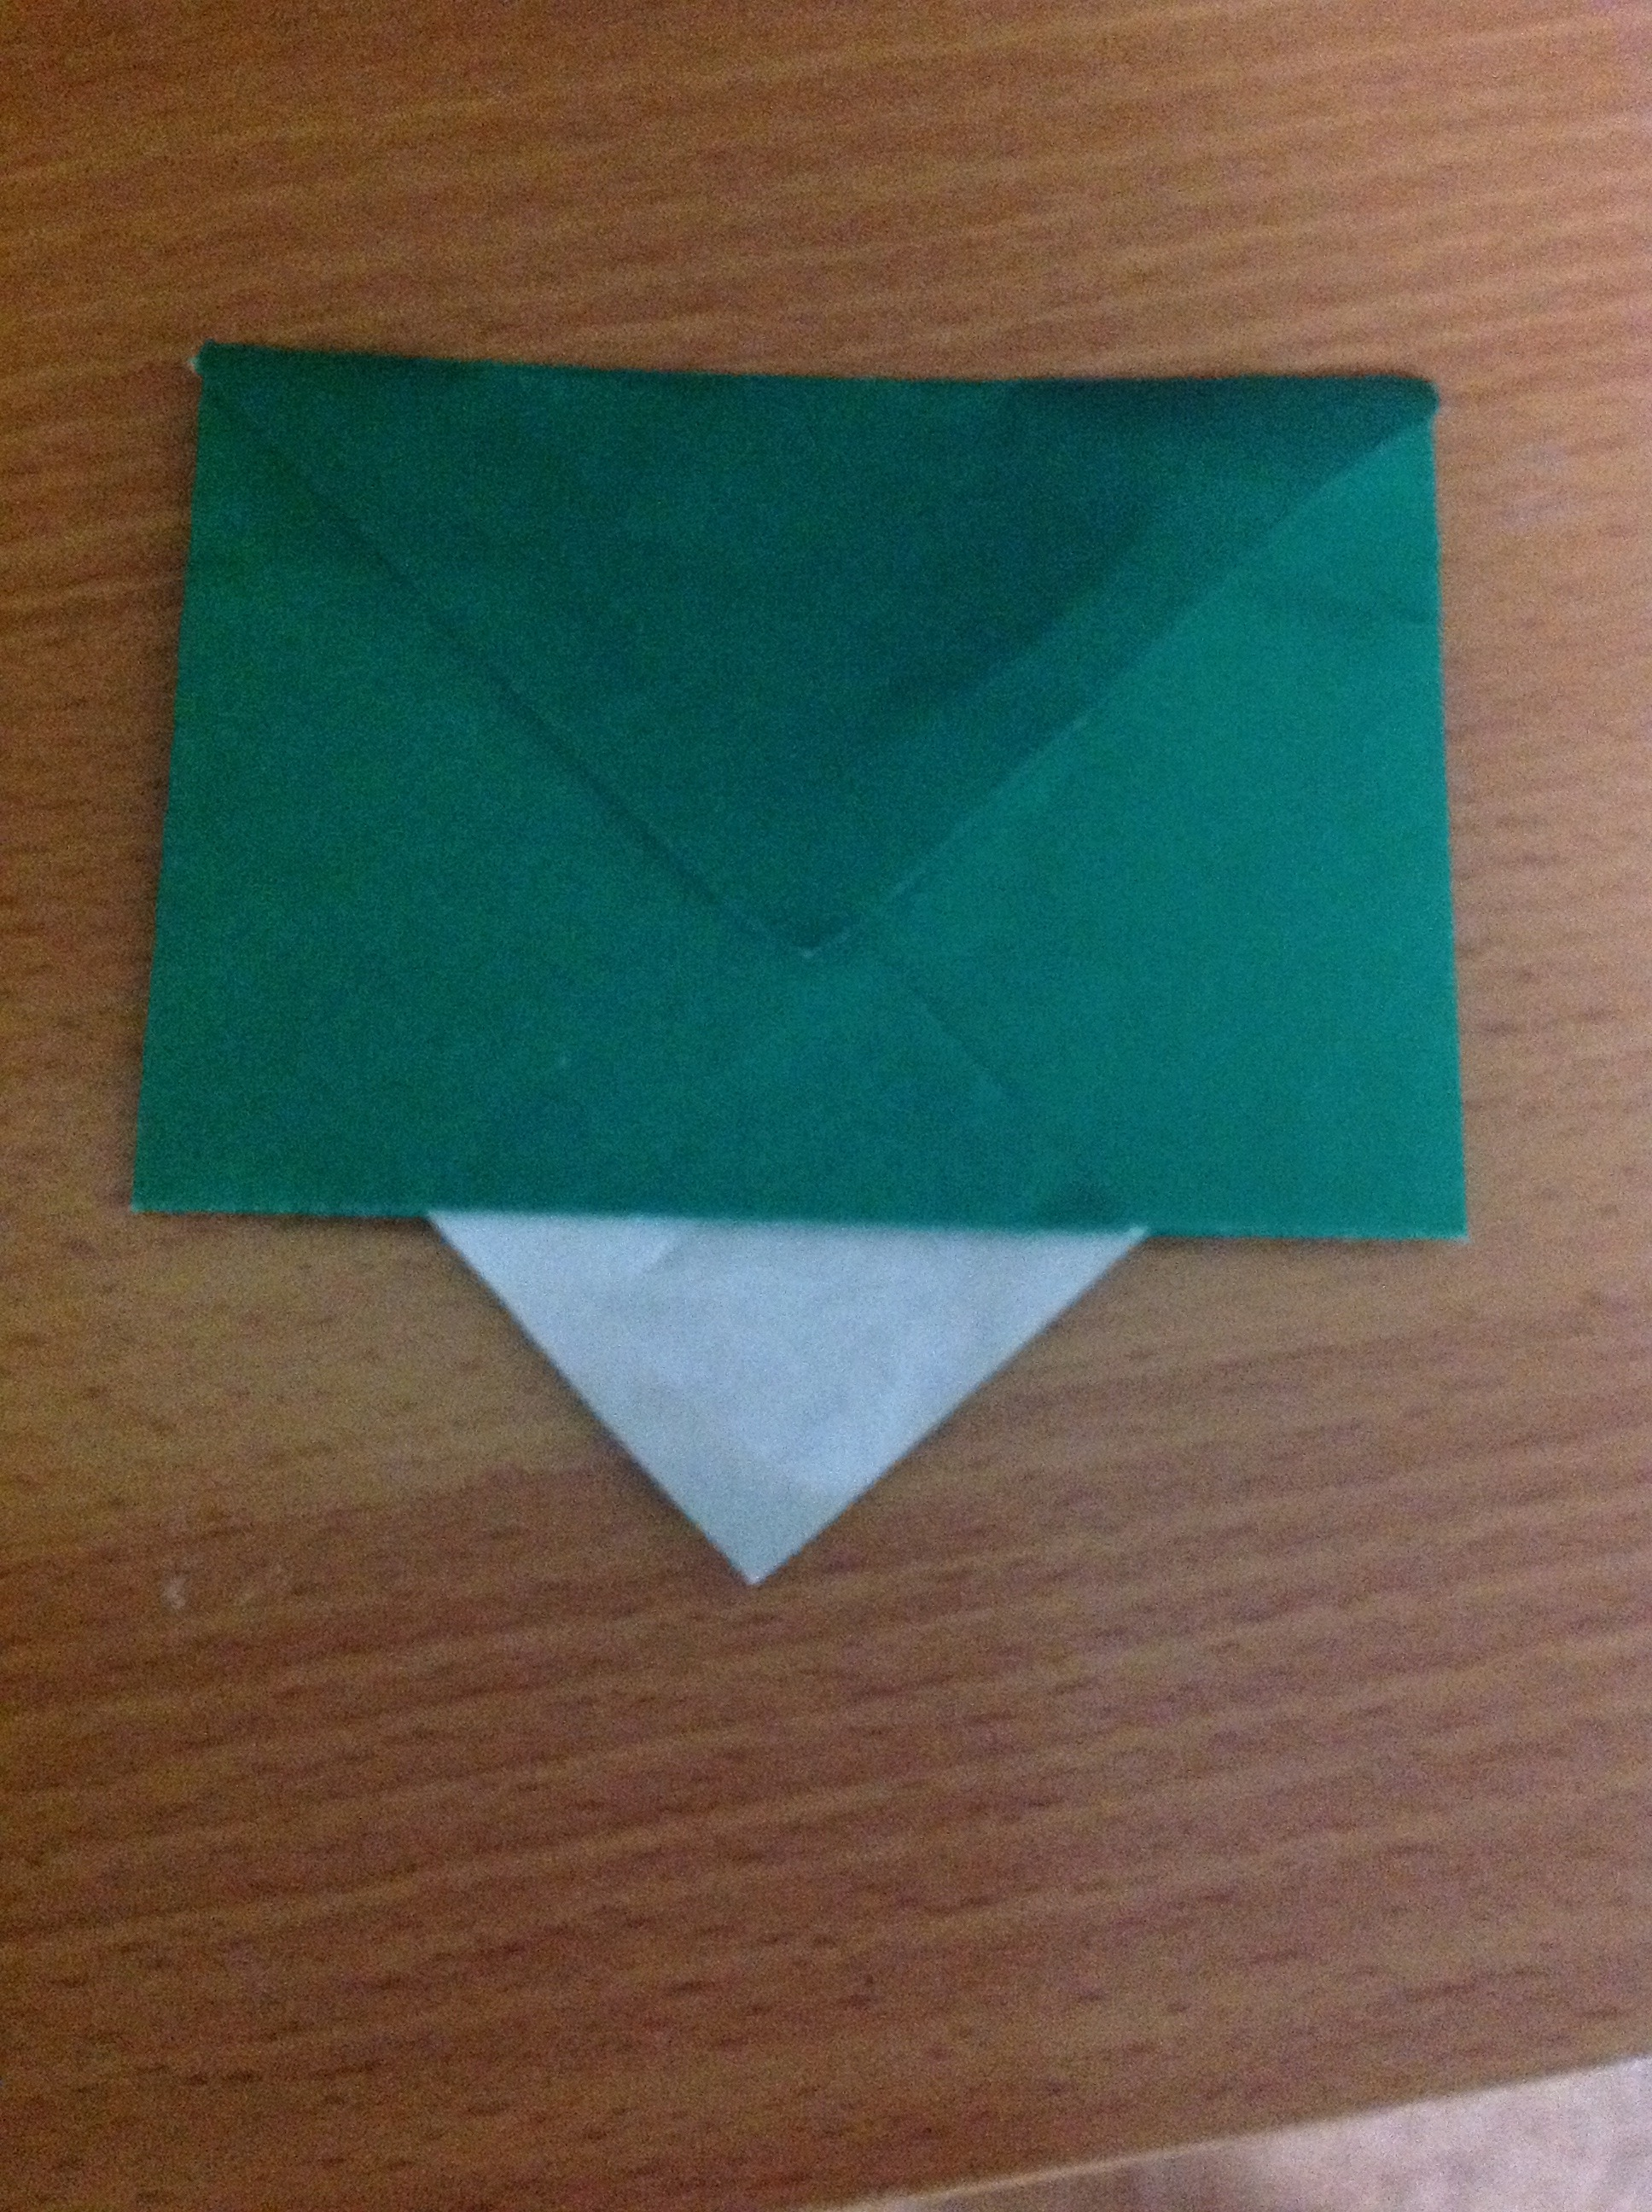 Picture of Origami 'Exploding' Envelope